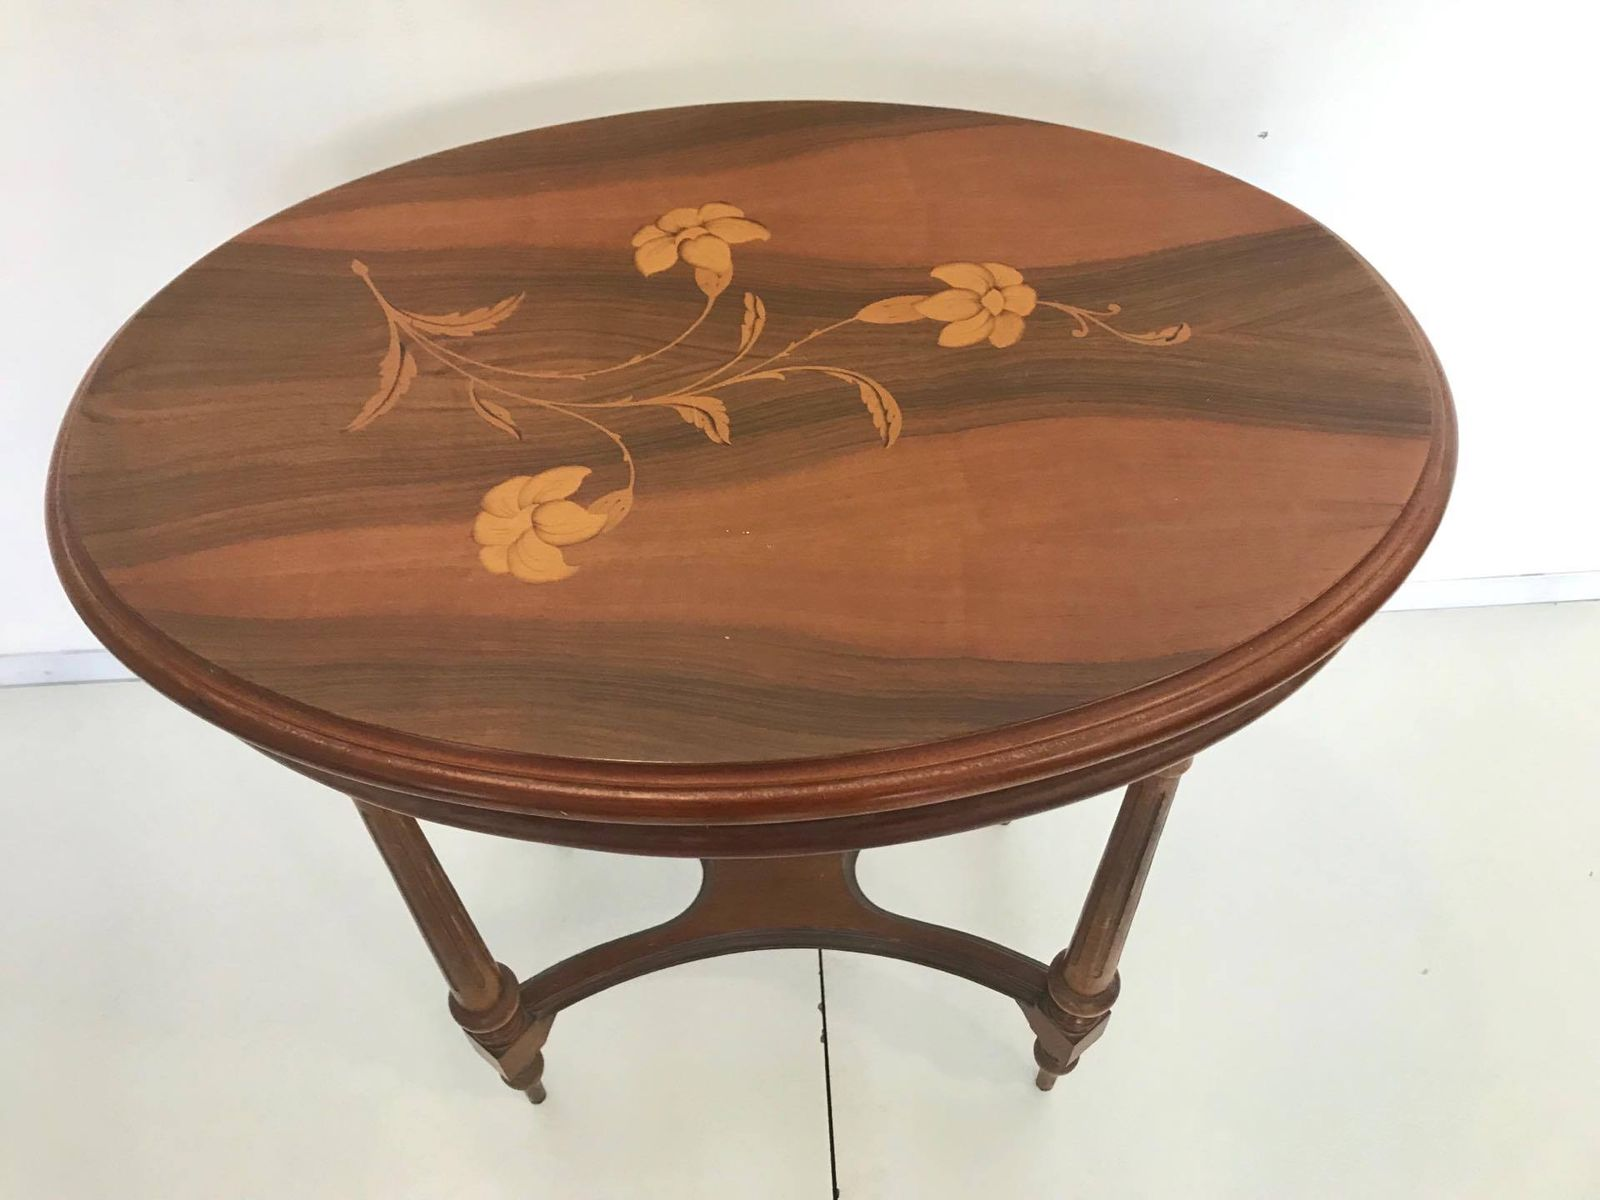 Italian art nouveau style coffee table 1950s for sale at Vogue coffee table